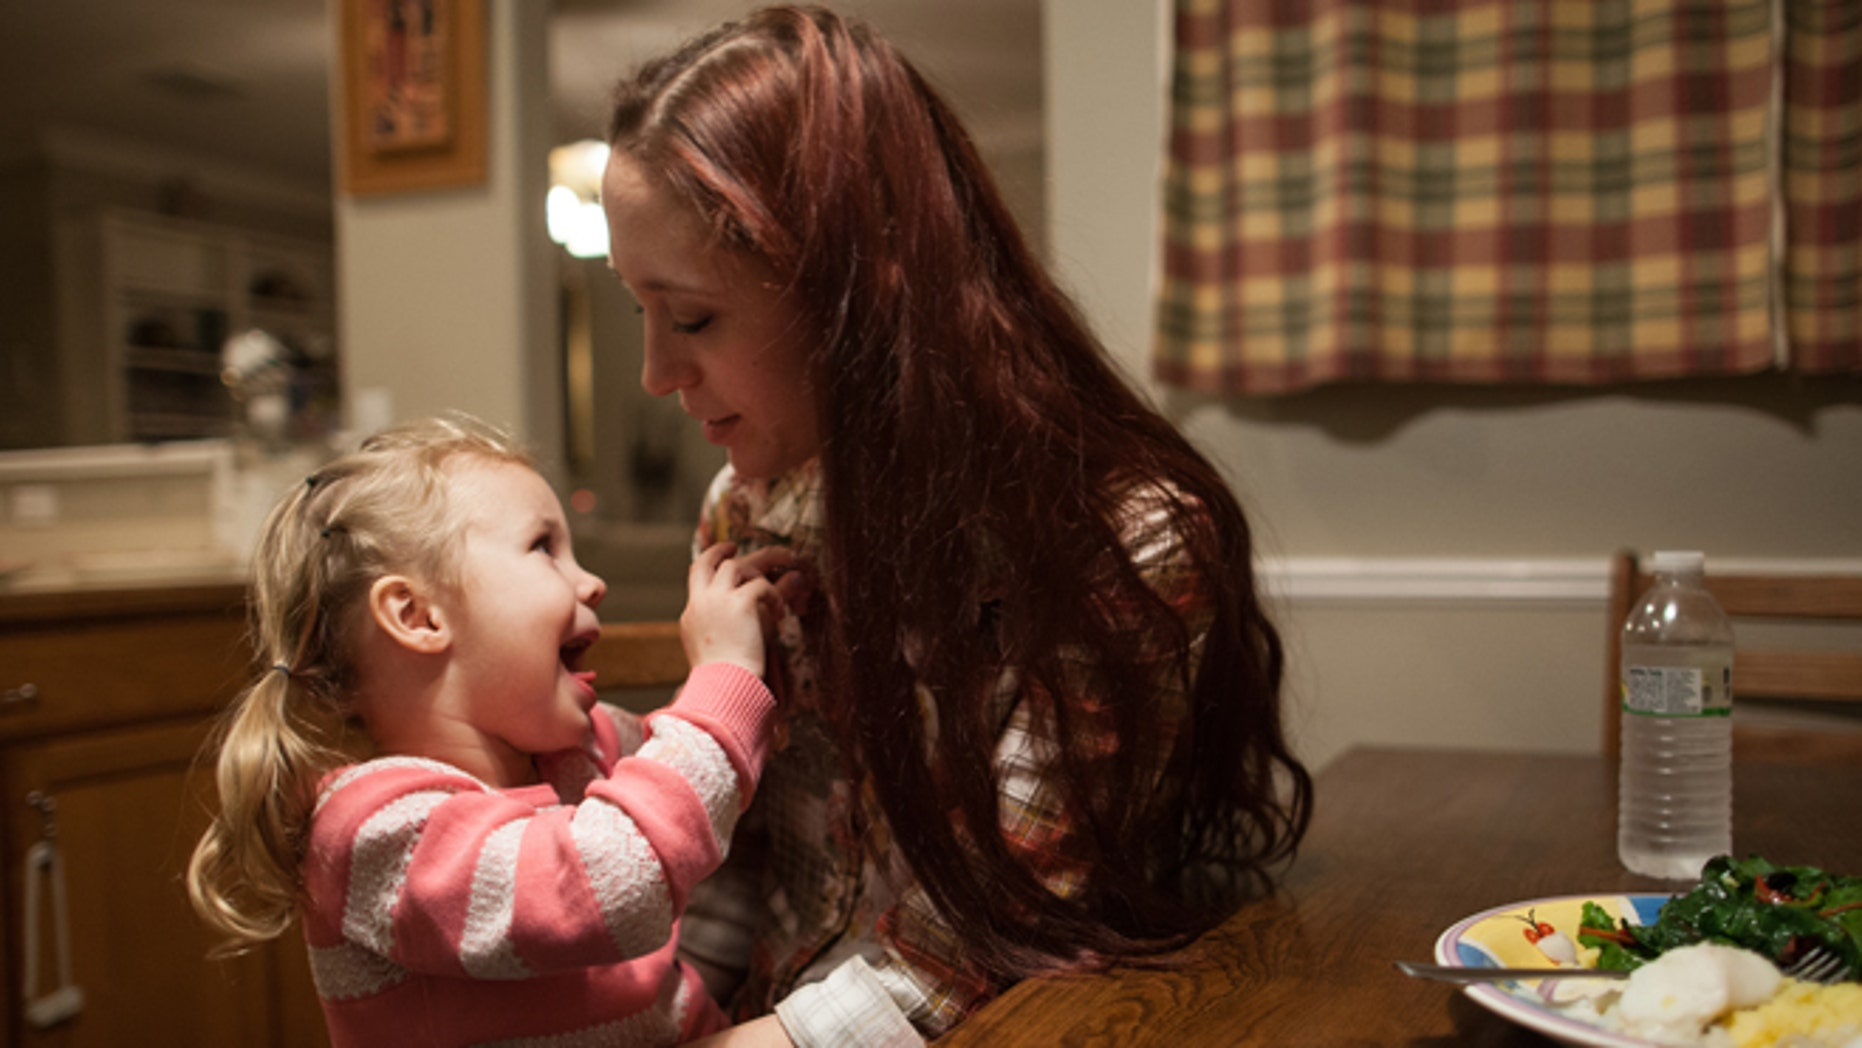 Jan. 25, 2014: Maggie Barcellano with daughter Zoe, 3, at her father's house in Austin, Texas.